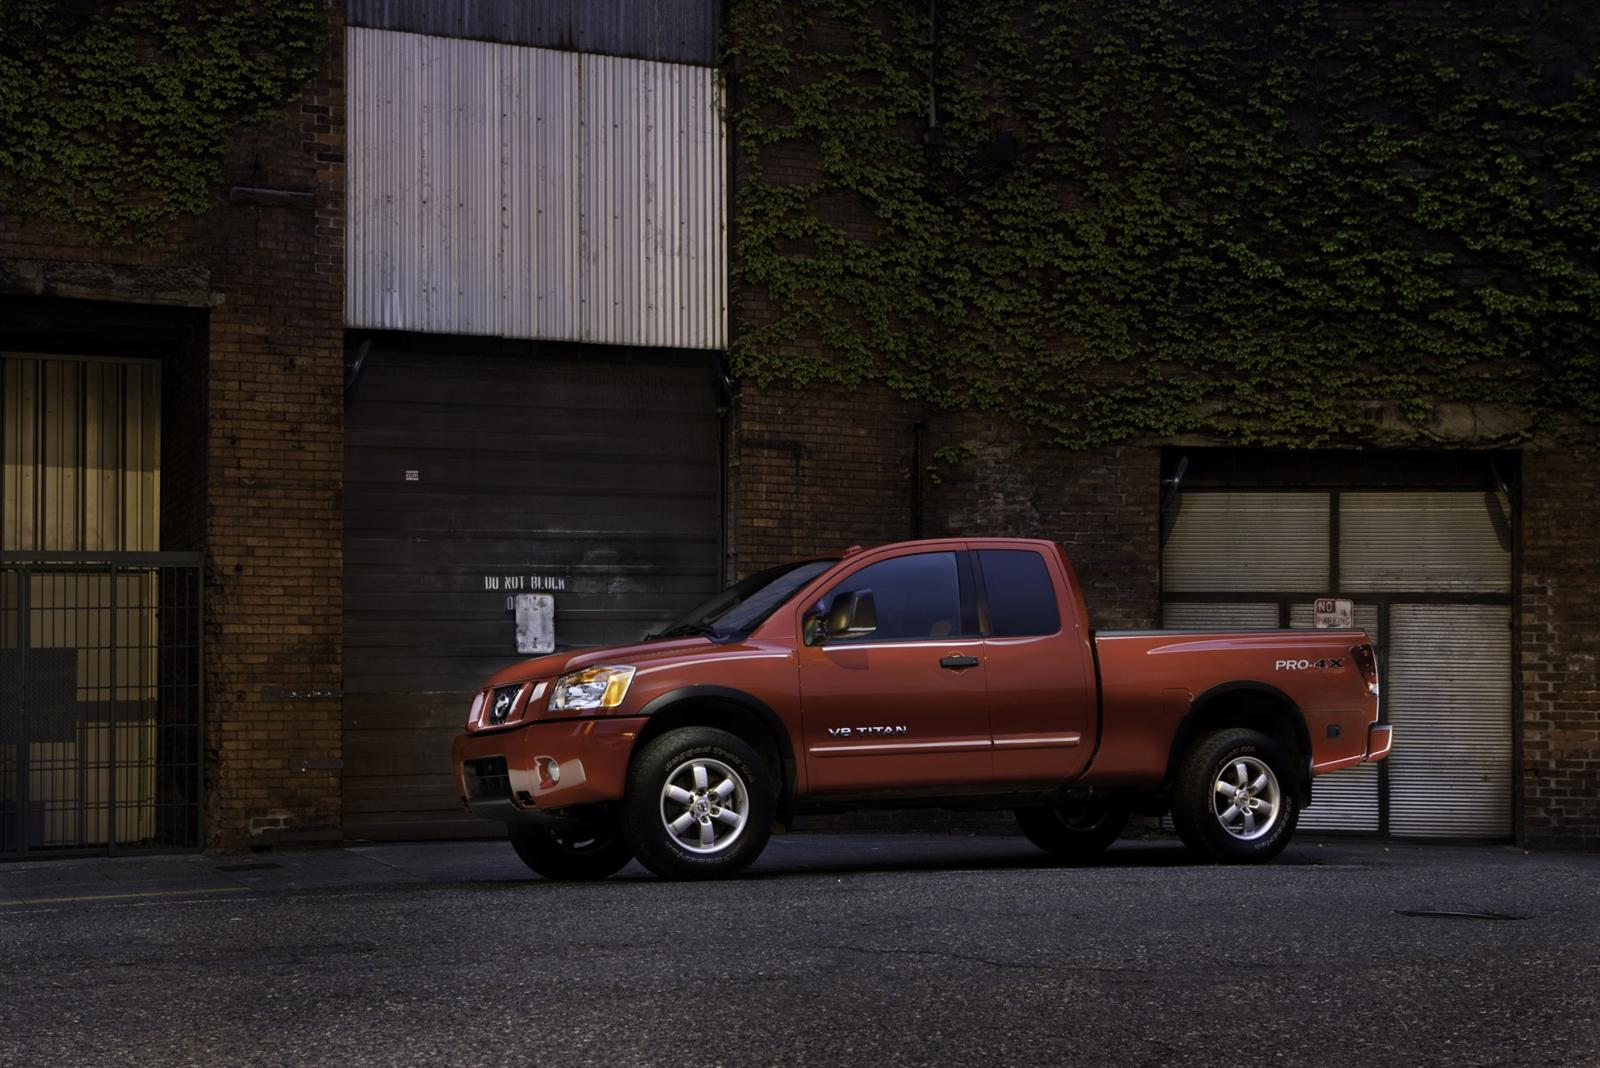 2011 Nissan Titan truck 9 2011, Nissan's take on the large size truck